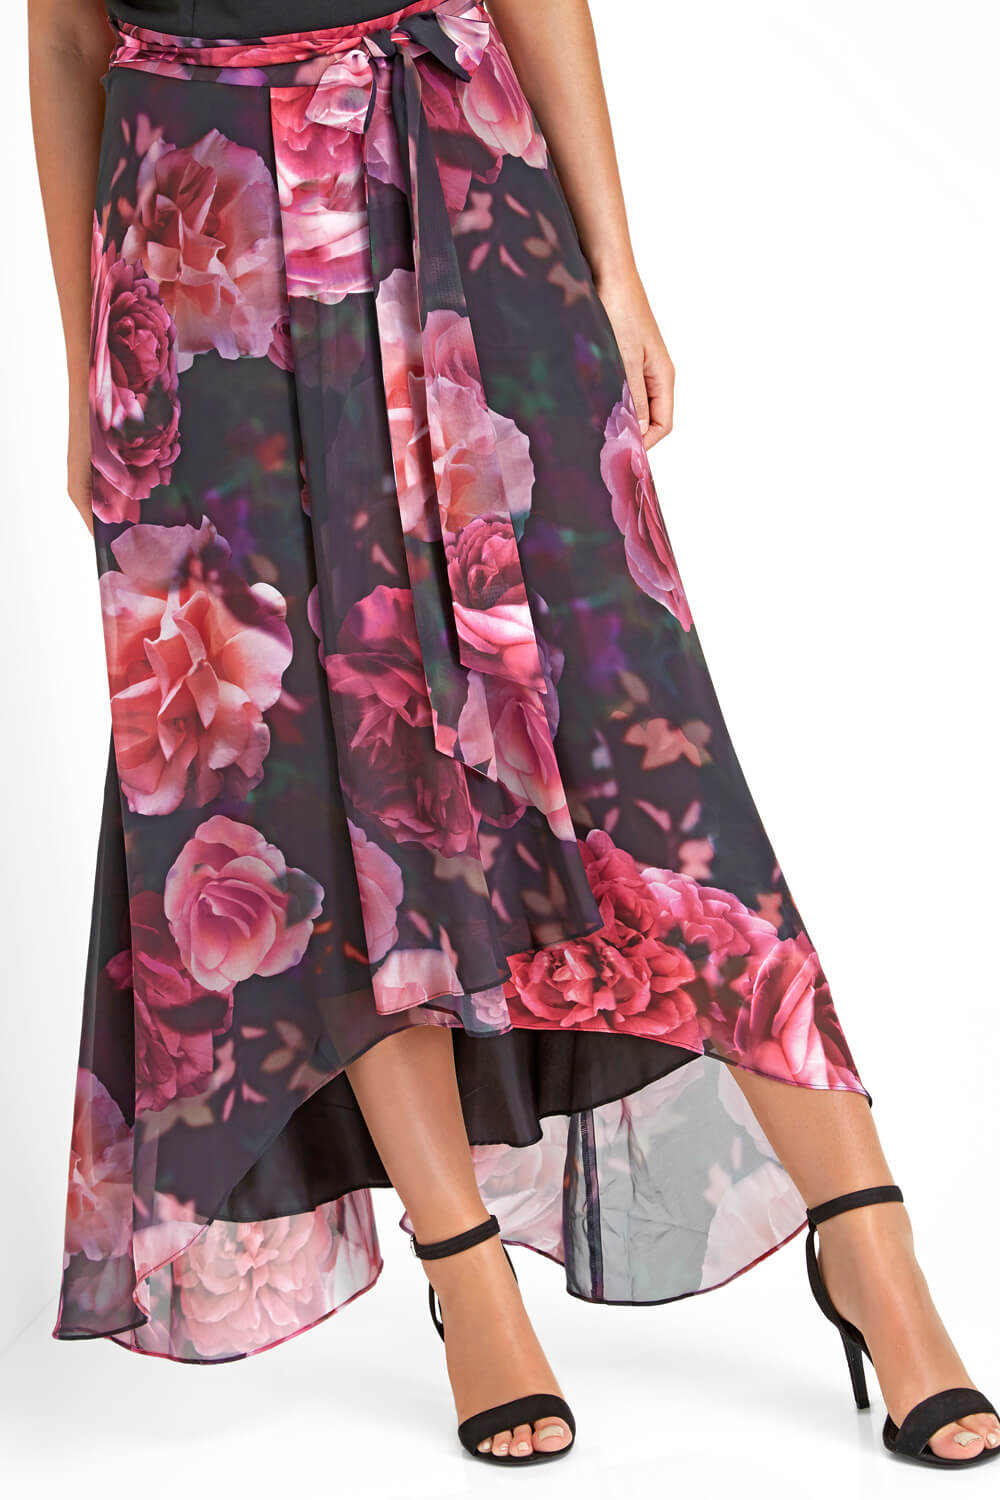 Roman-Originals-Women-Floral-Print-Cold-Shoulder-Maxi-Dress thumbnail 11